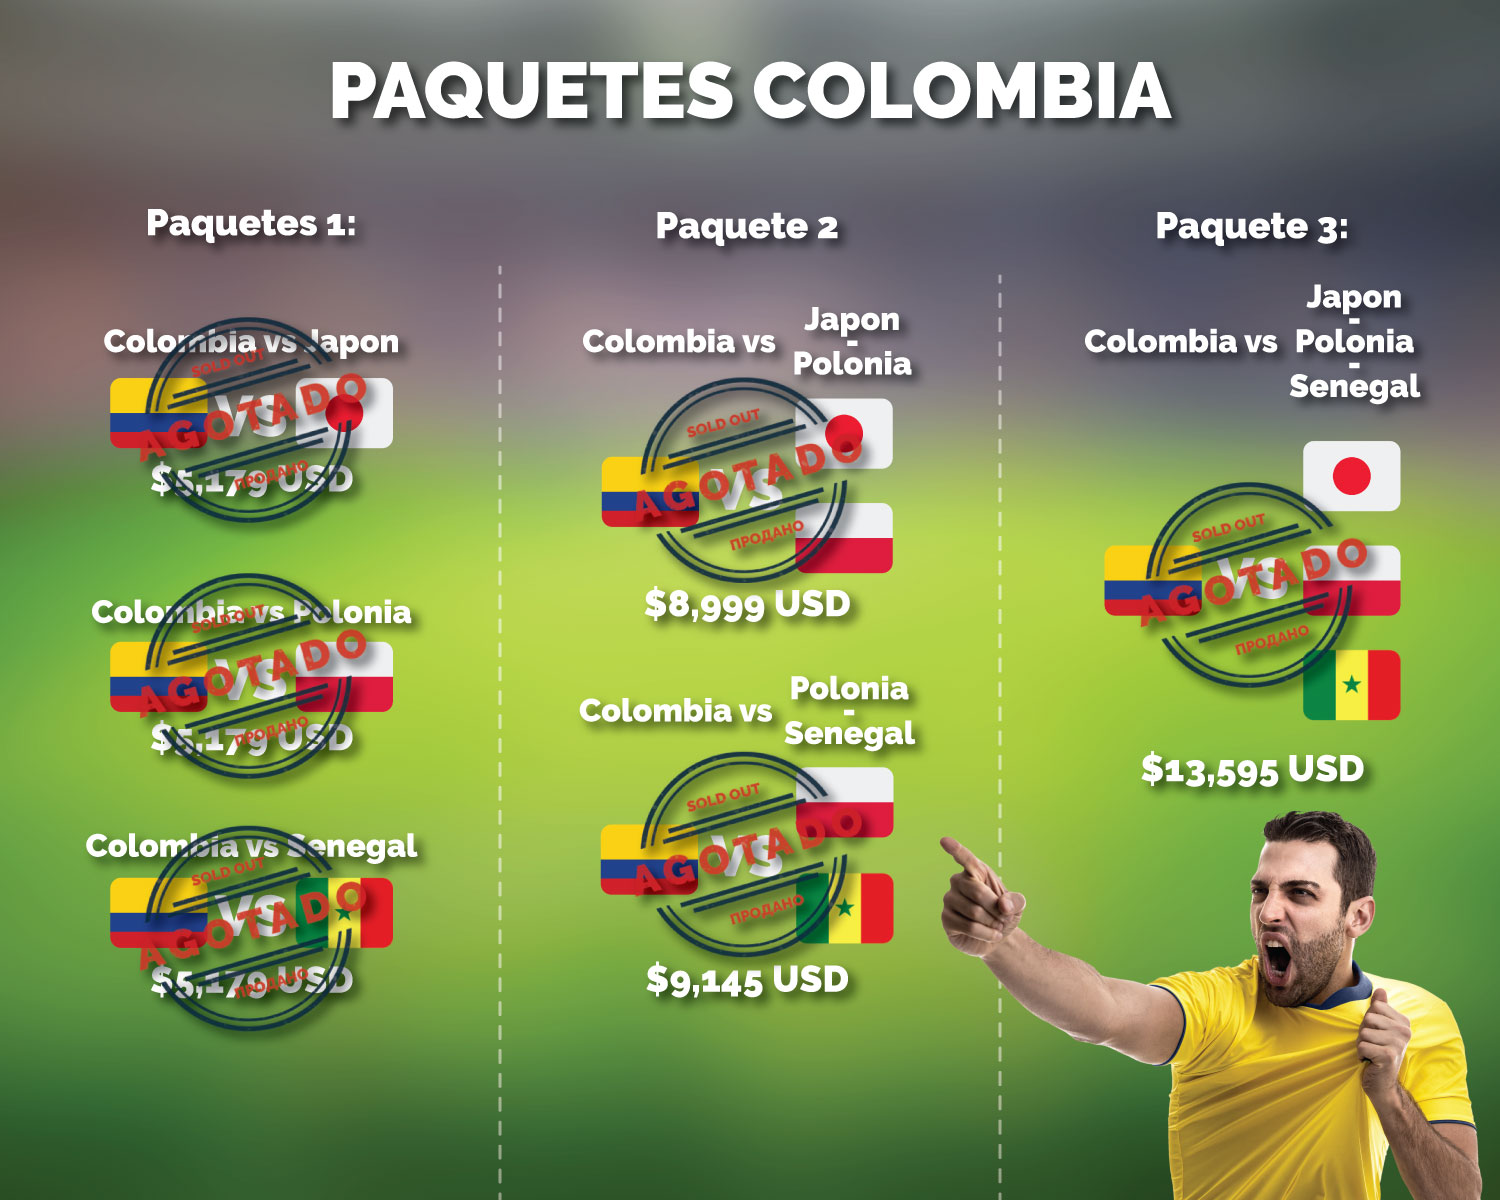 paquetes partidos colombia vs japon polonia sengal rusia 2018